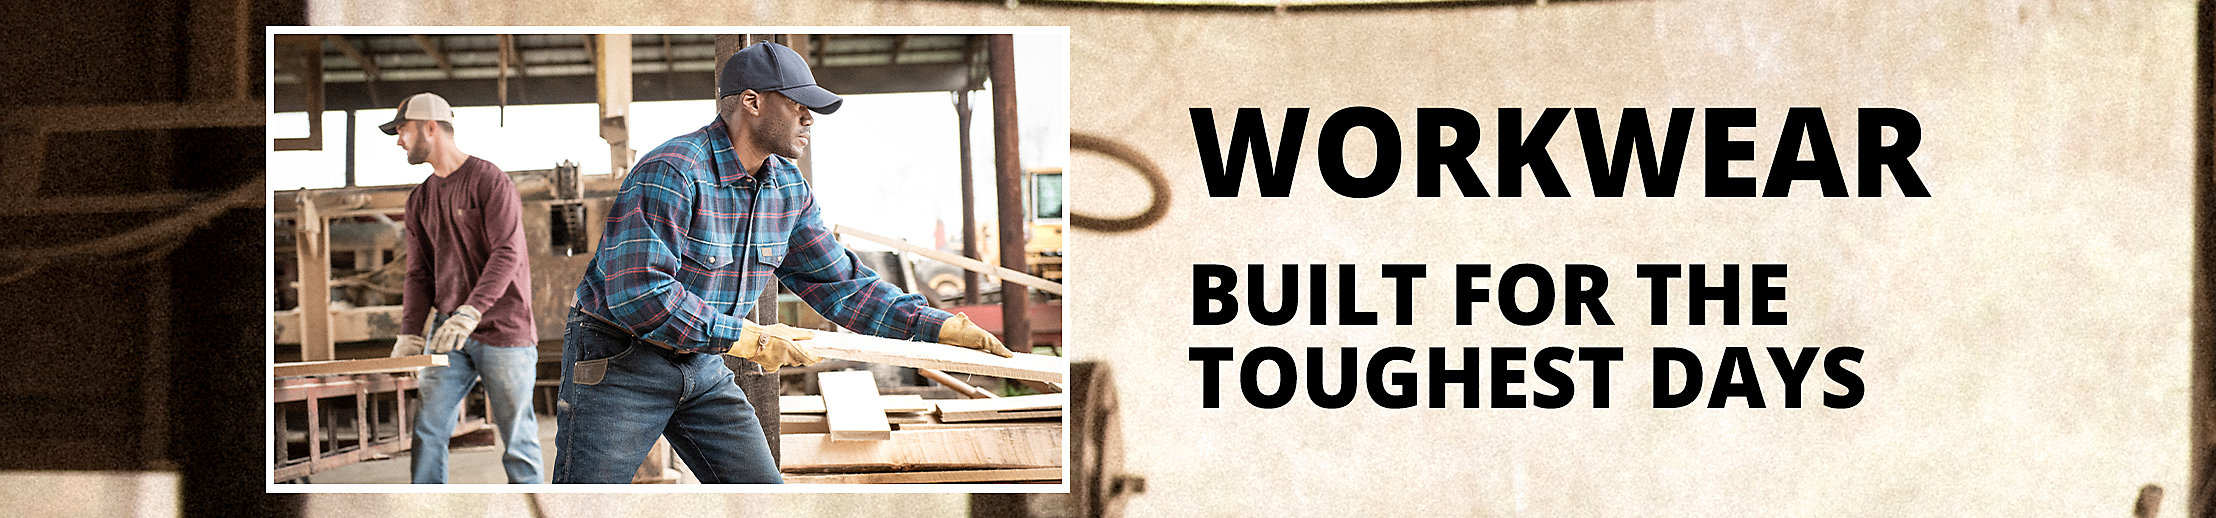 Shop Workwear for Men | Wrangler